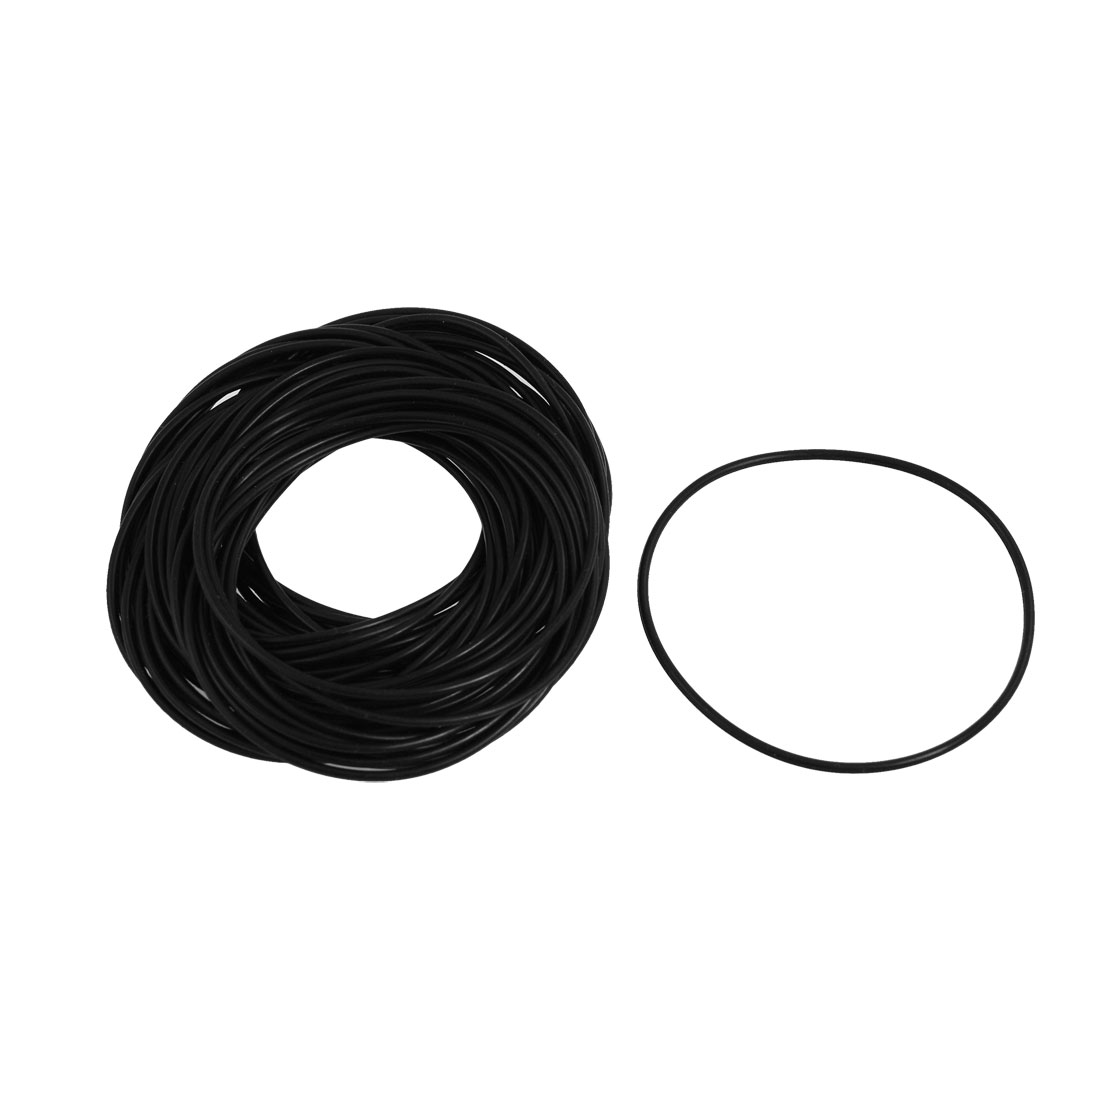 50 Pcs Nitrile Rubber O Ring Oil Sealing Gasket Black 55mm x 1.5mm